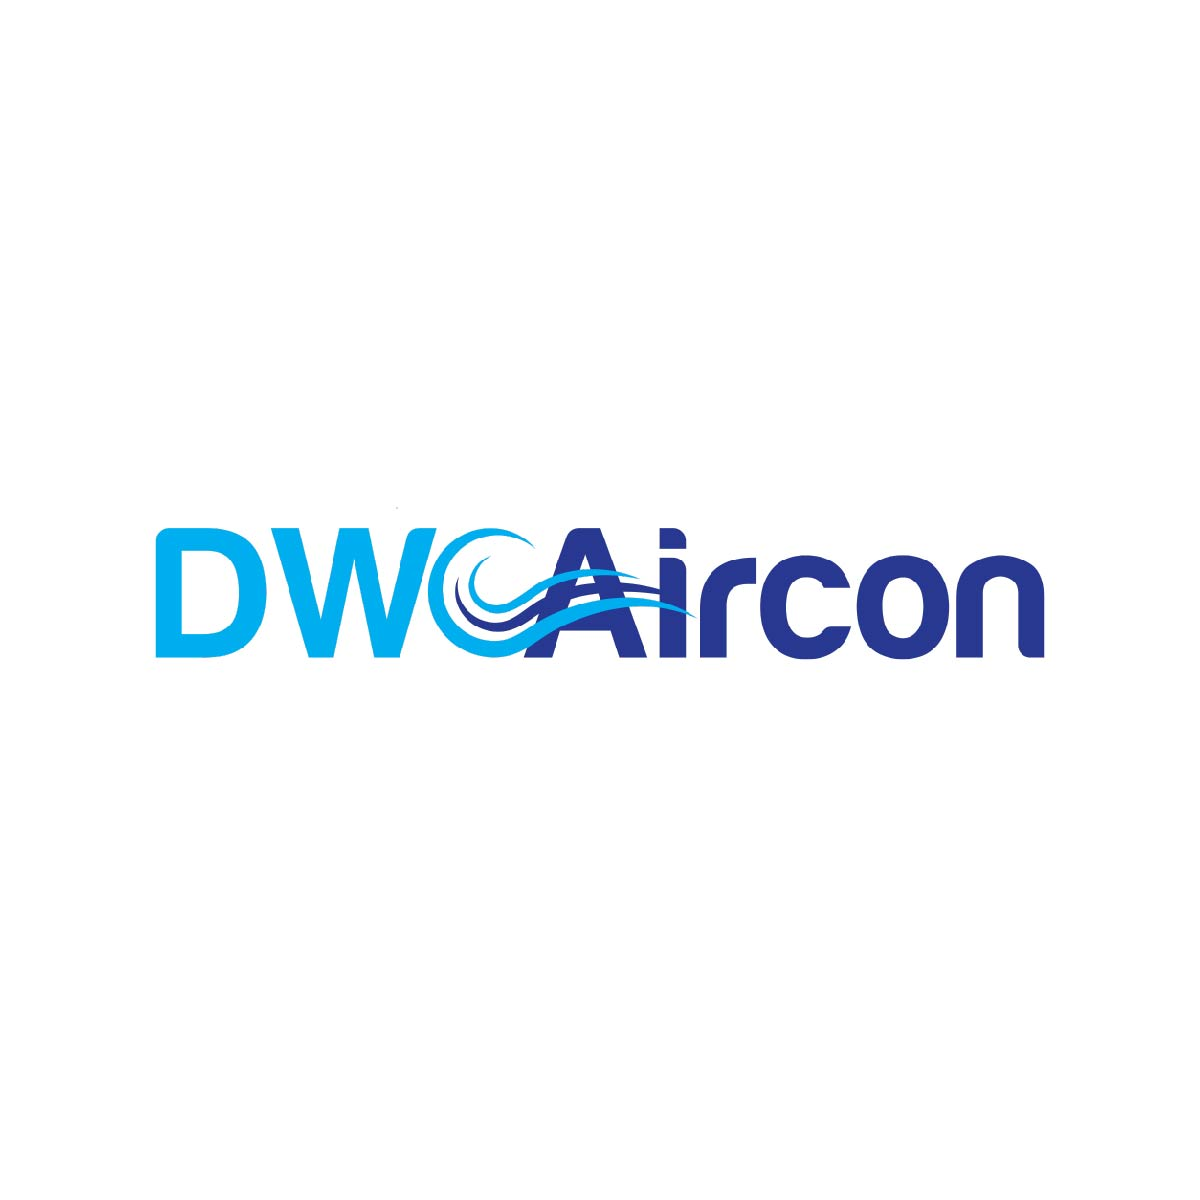 Singapore Leading Aircon Servicing Company, DW Aircon Servicing Singapore announces brand unification with Everyworks